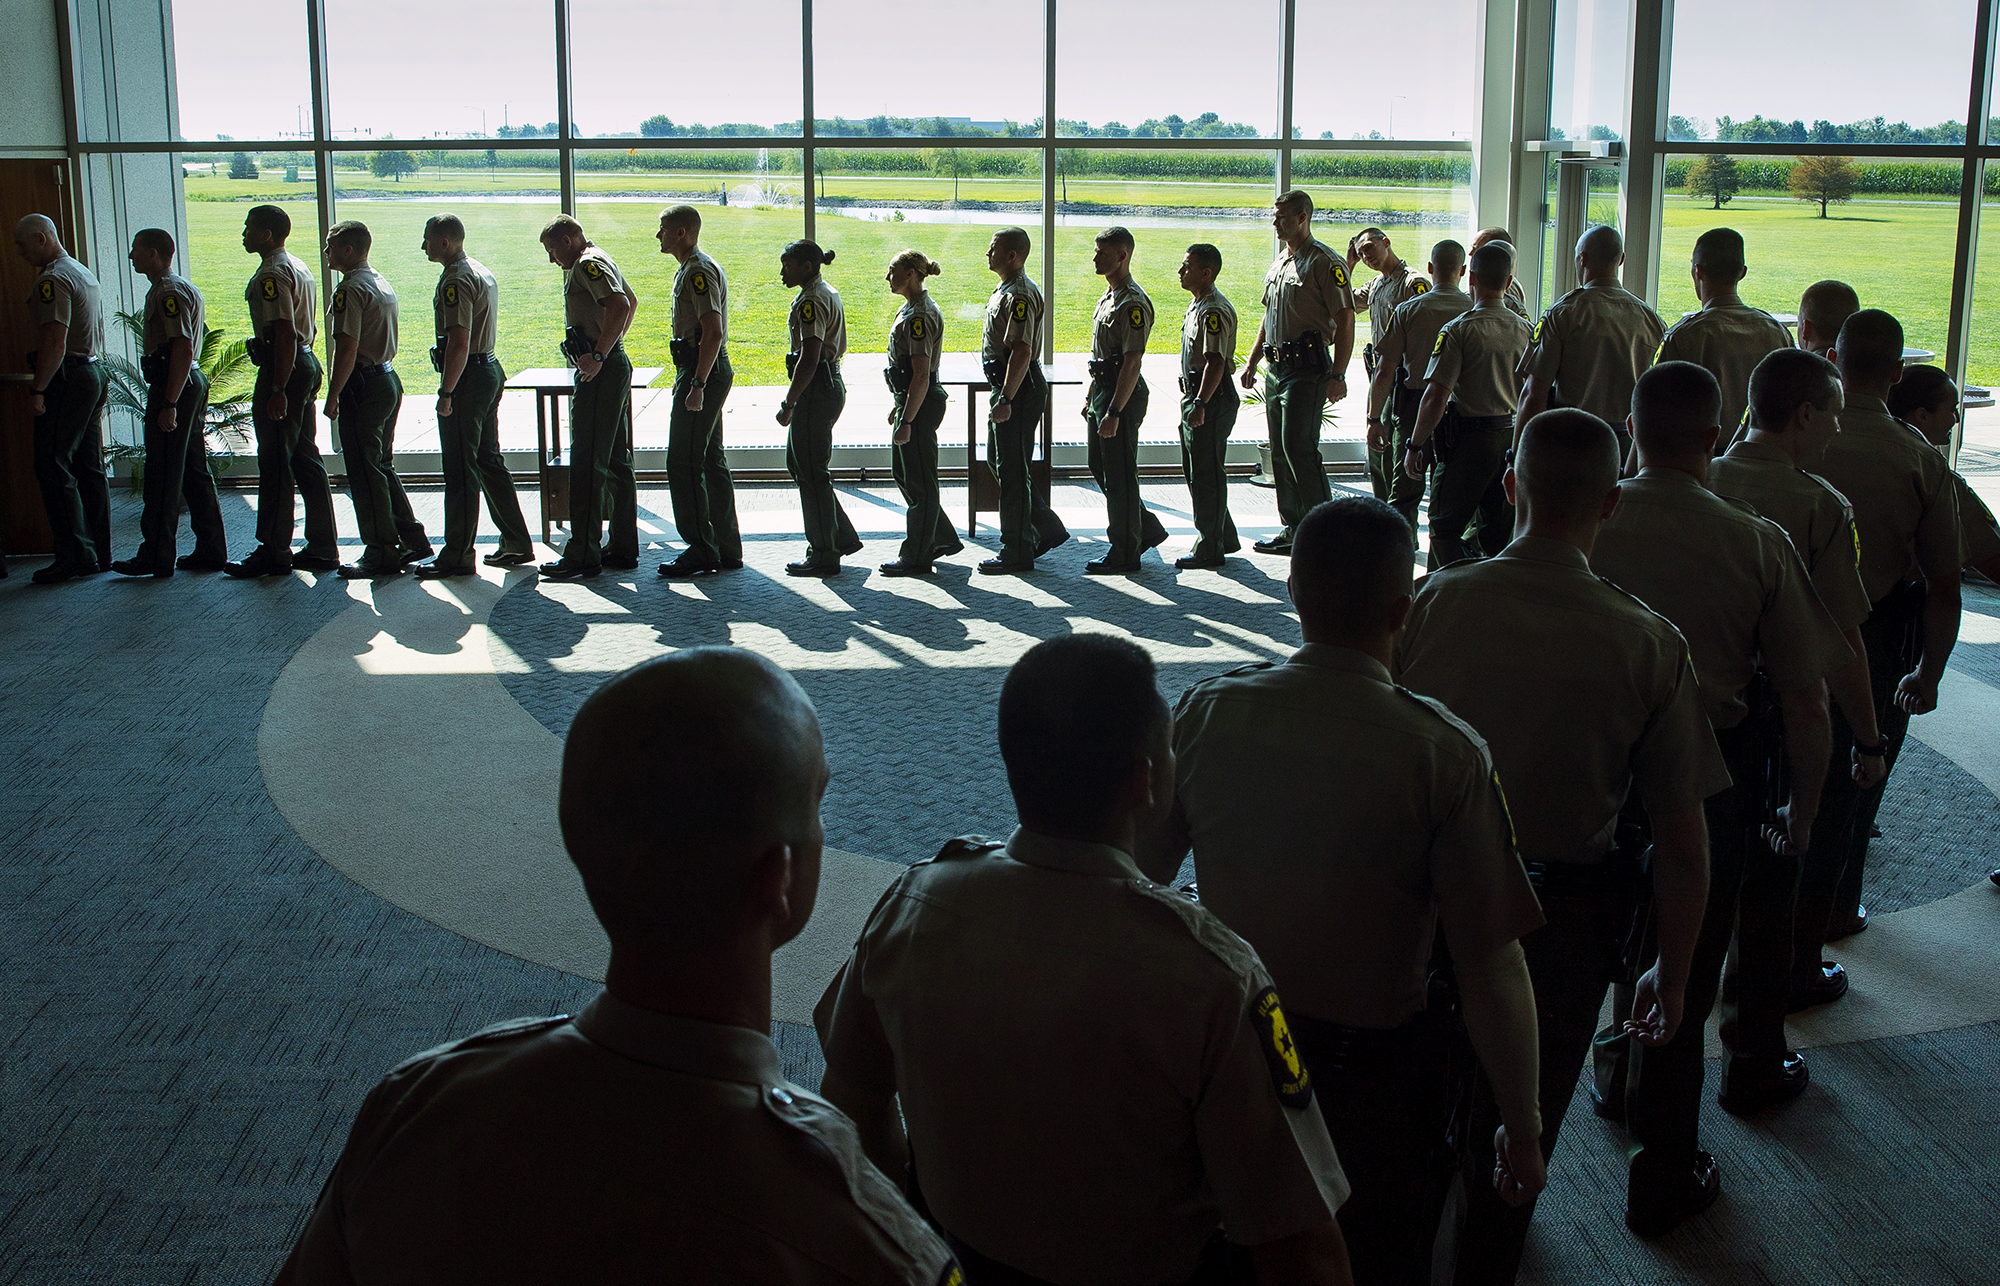 Cadets wait to file into the sanctuary during the Illinois State Police Cadet Class 127 Graduation at Hope Church Friday, Aug. 10, 2018. Eighty-one cadets graduated. [Ted Schurter/The State Journal-Register]